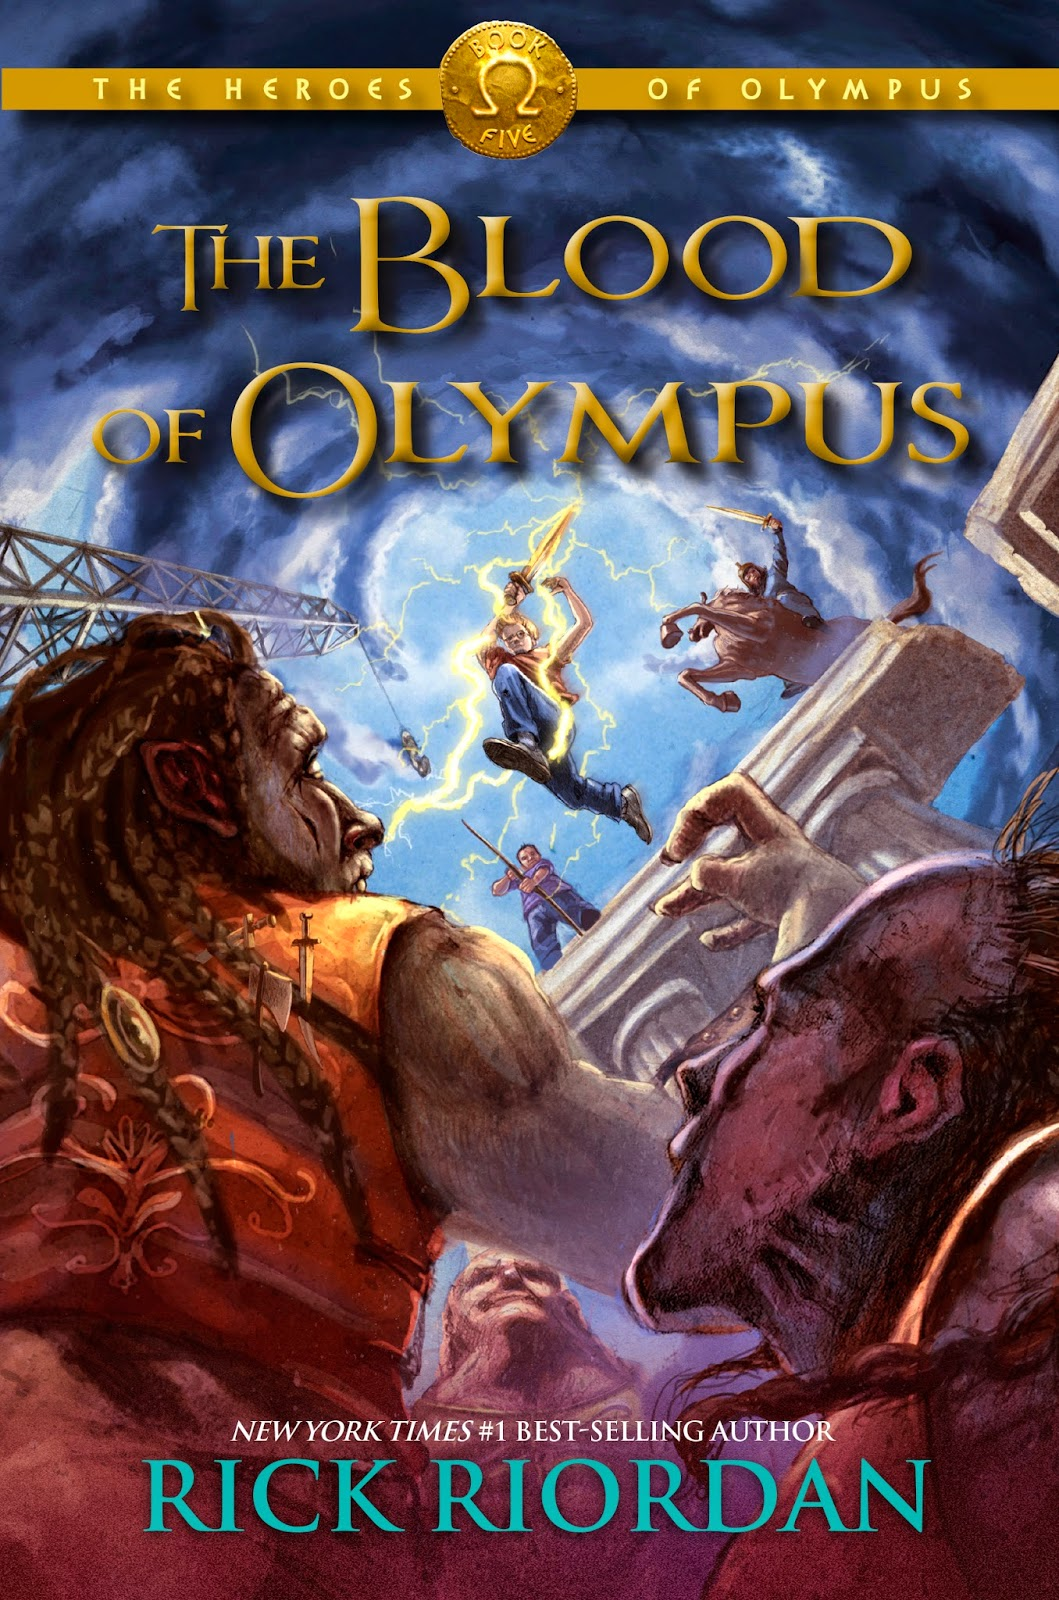 Book Review: The Blood of Olympus, by Rick Riordan